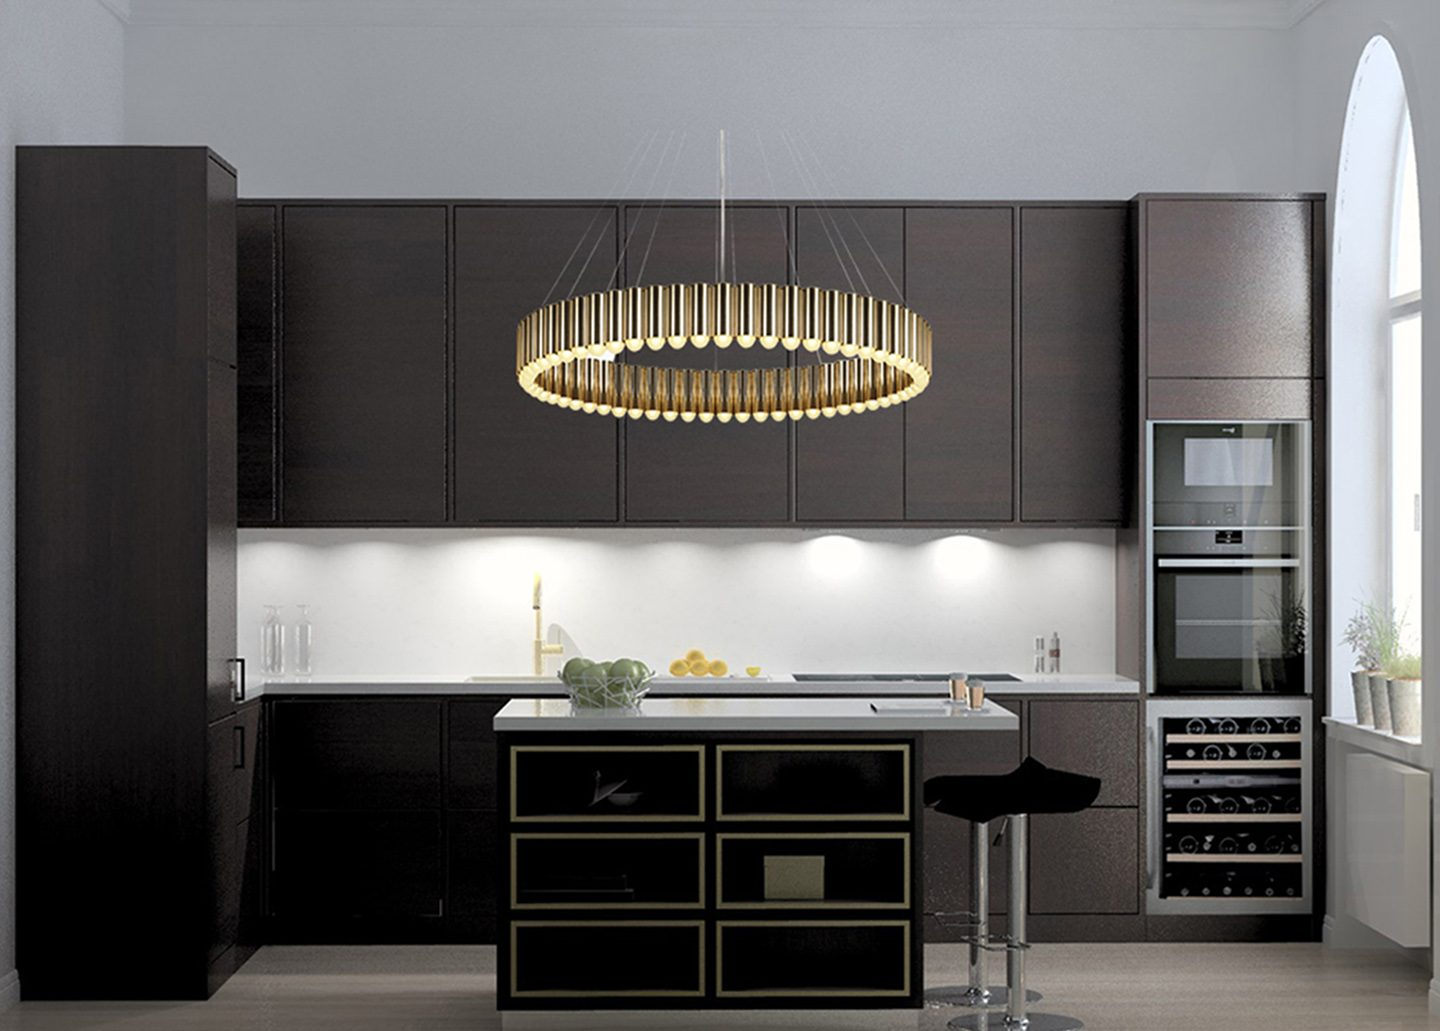 CAROUSEL XL BRASS PENDANT LIGHT BY LEE BROOM